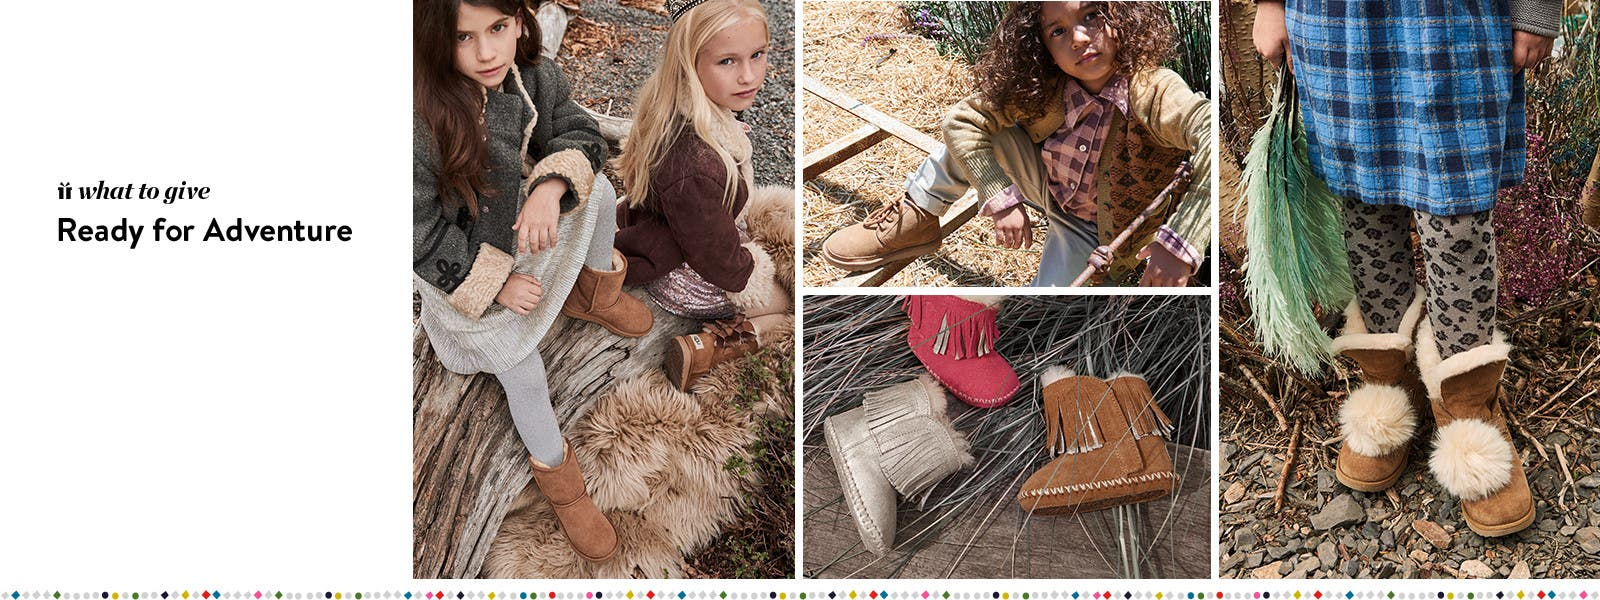 Ready for adventure: UGG boots and UGG slippers for kids.